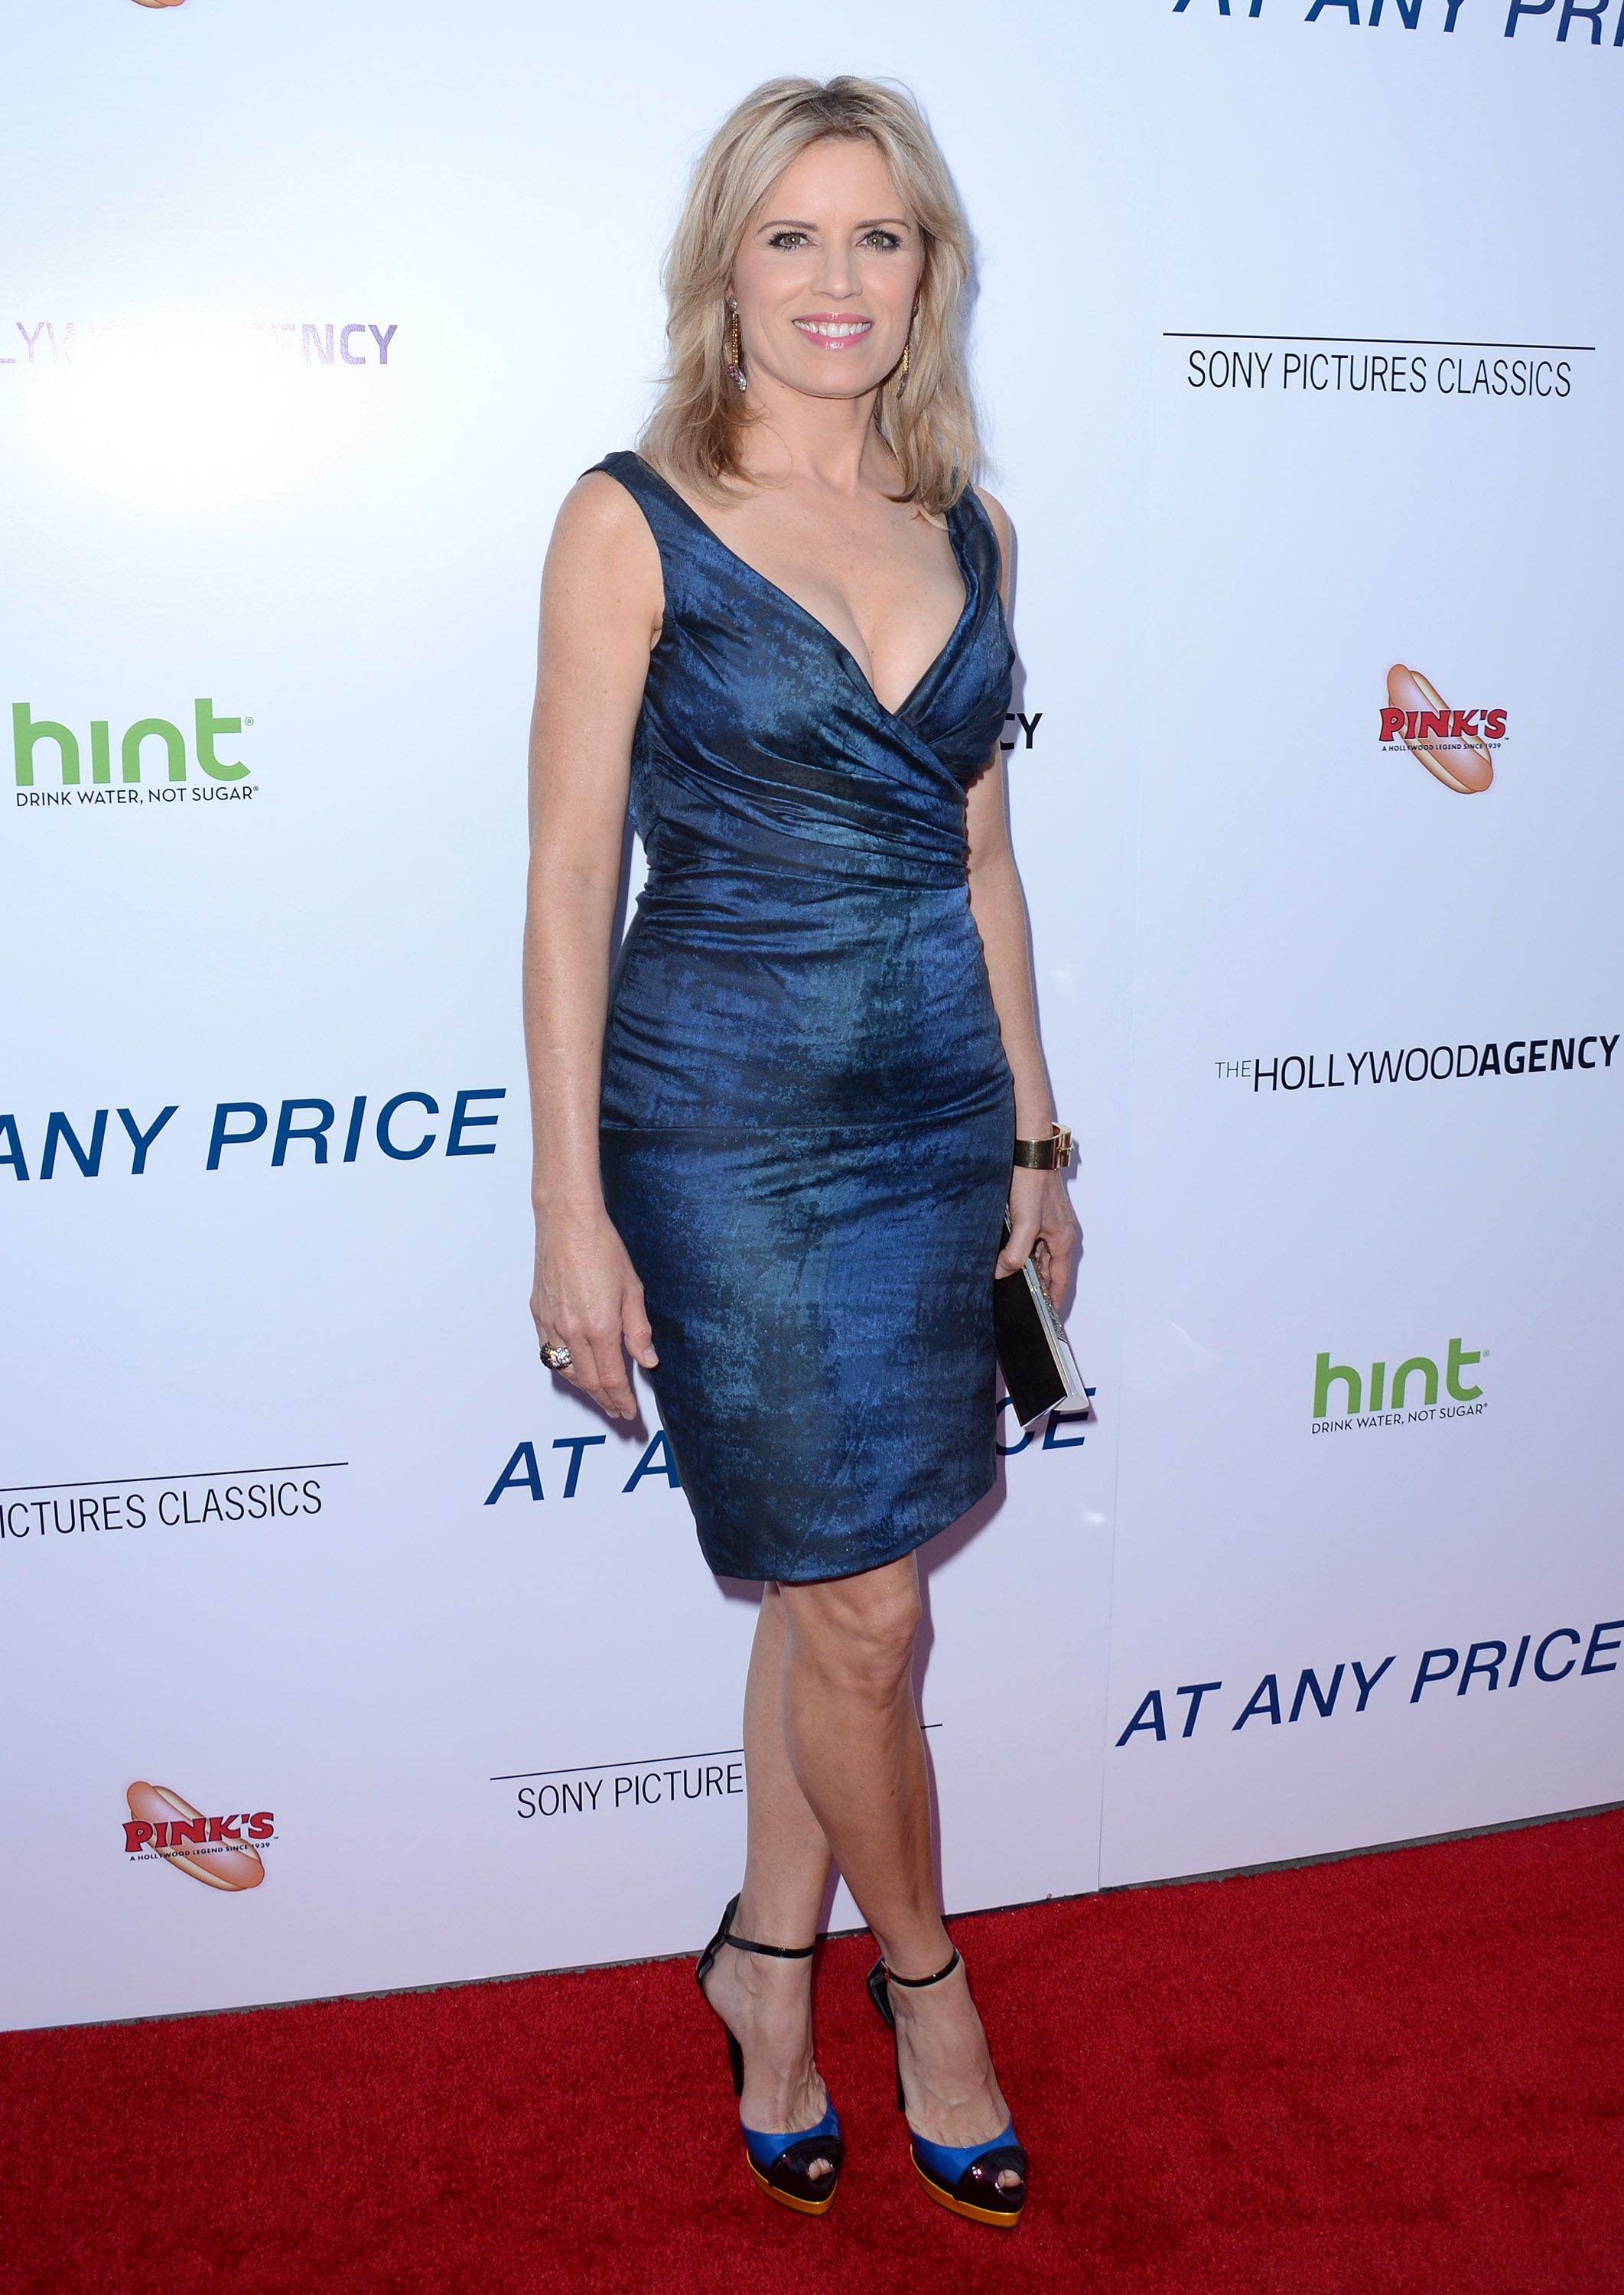 Image Result For Kim Dickens Nude